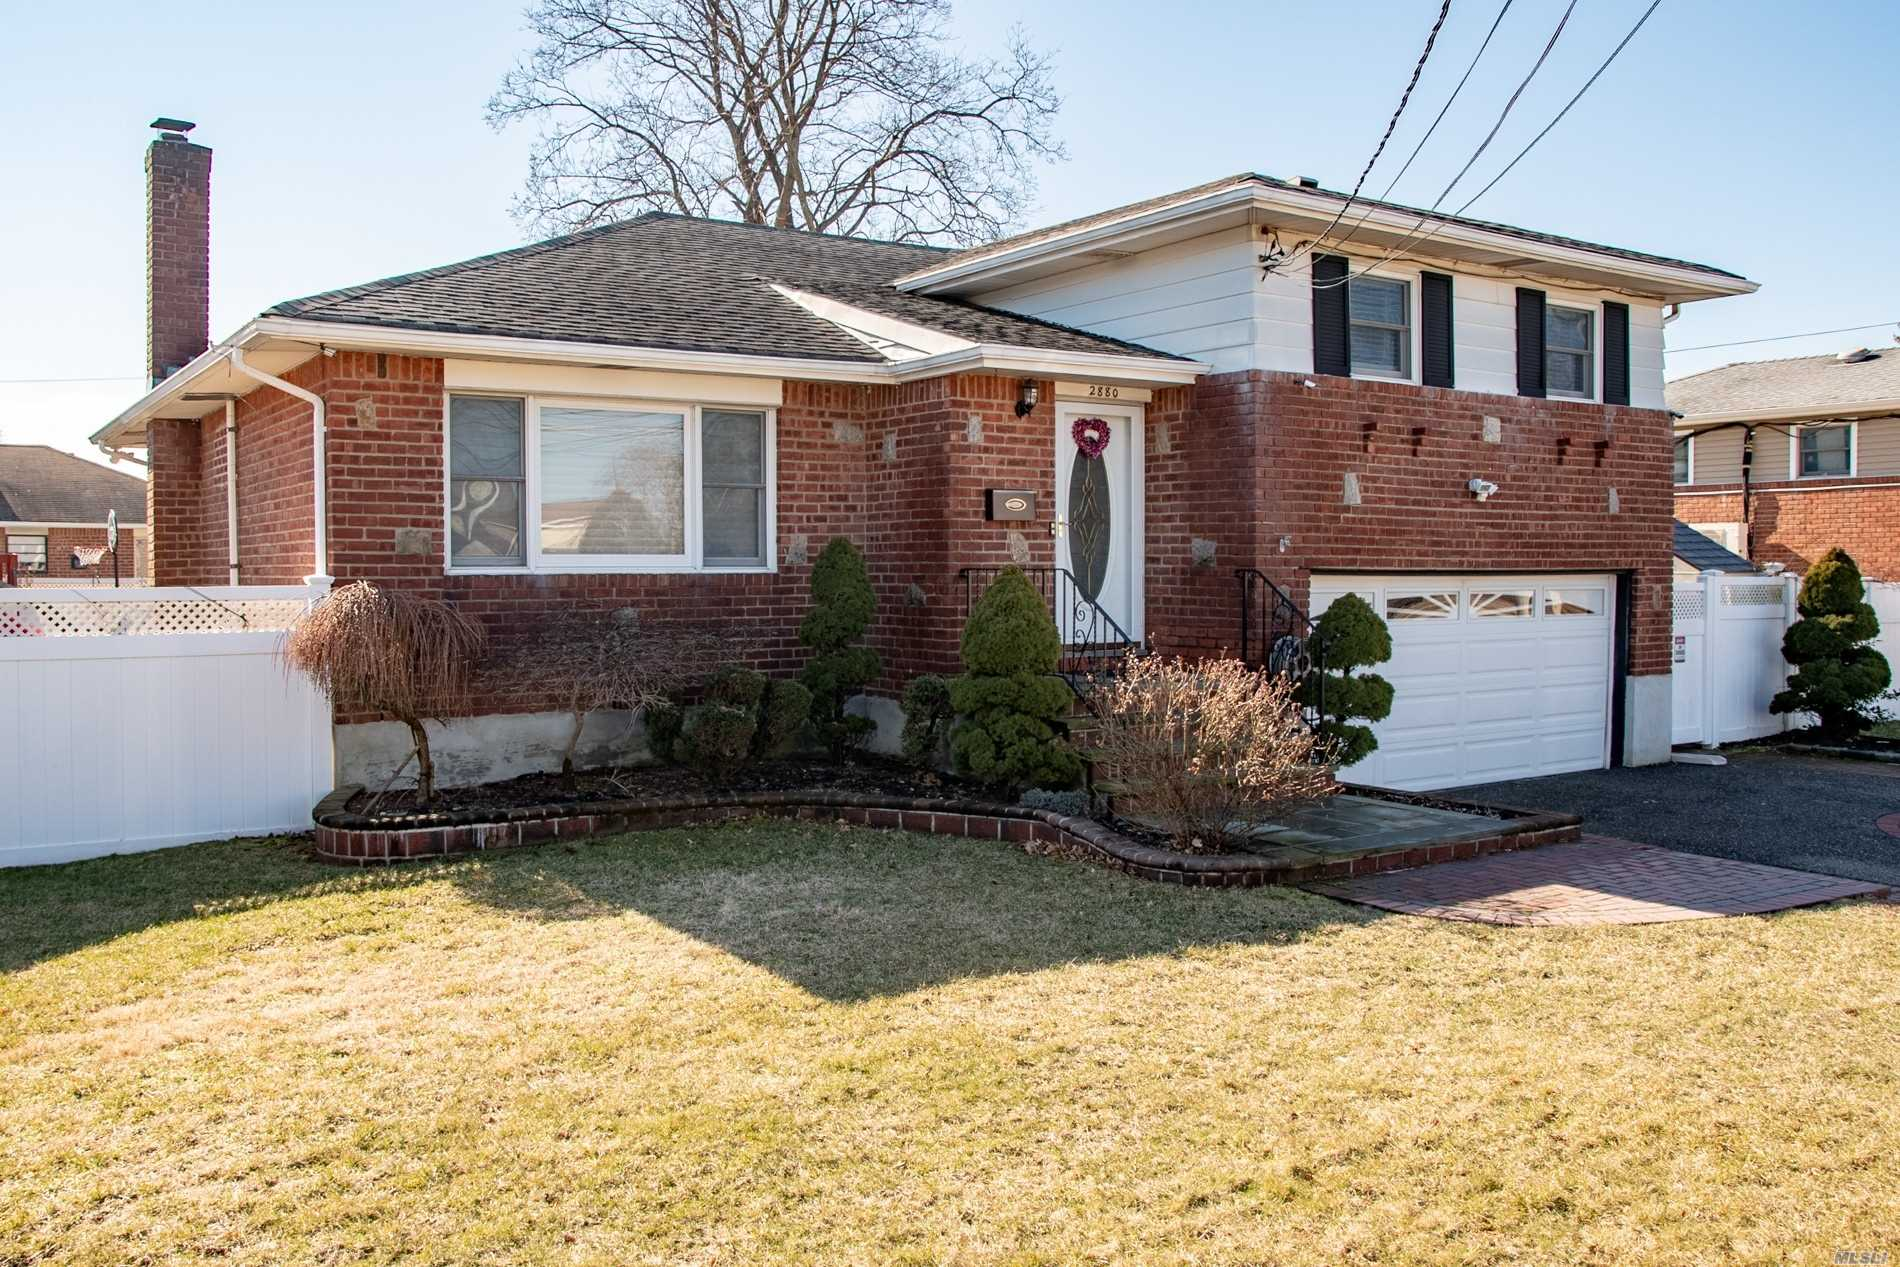 Stunning Brick Split Located On A Quiet Street. The Home Has An Open Layout With Gleaming Hardwood Floors, Tastefully Updated Kitchen & Baths, Brand New Gas Heating System, Central Air, In-Ground Sprinklers, And A Beautifully Maintained Private Yard With Pavers And Pvc Fence.